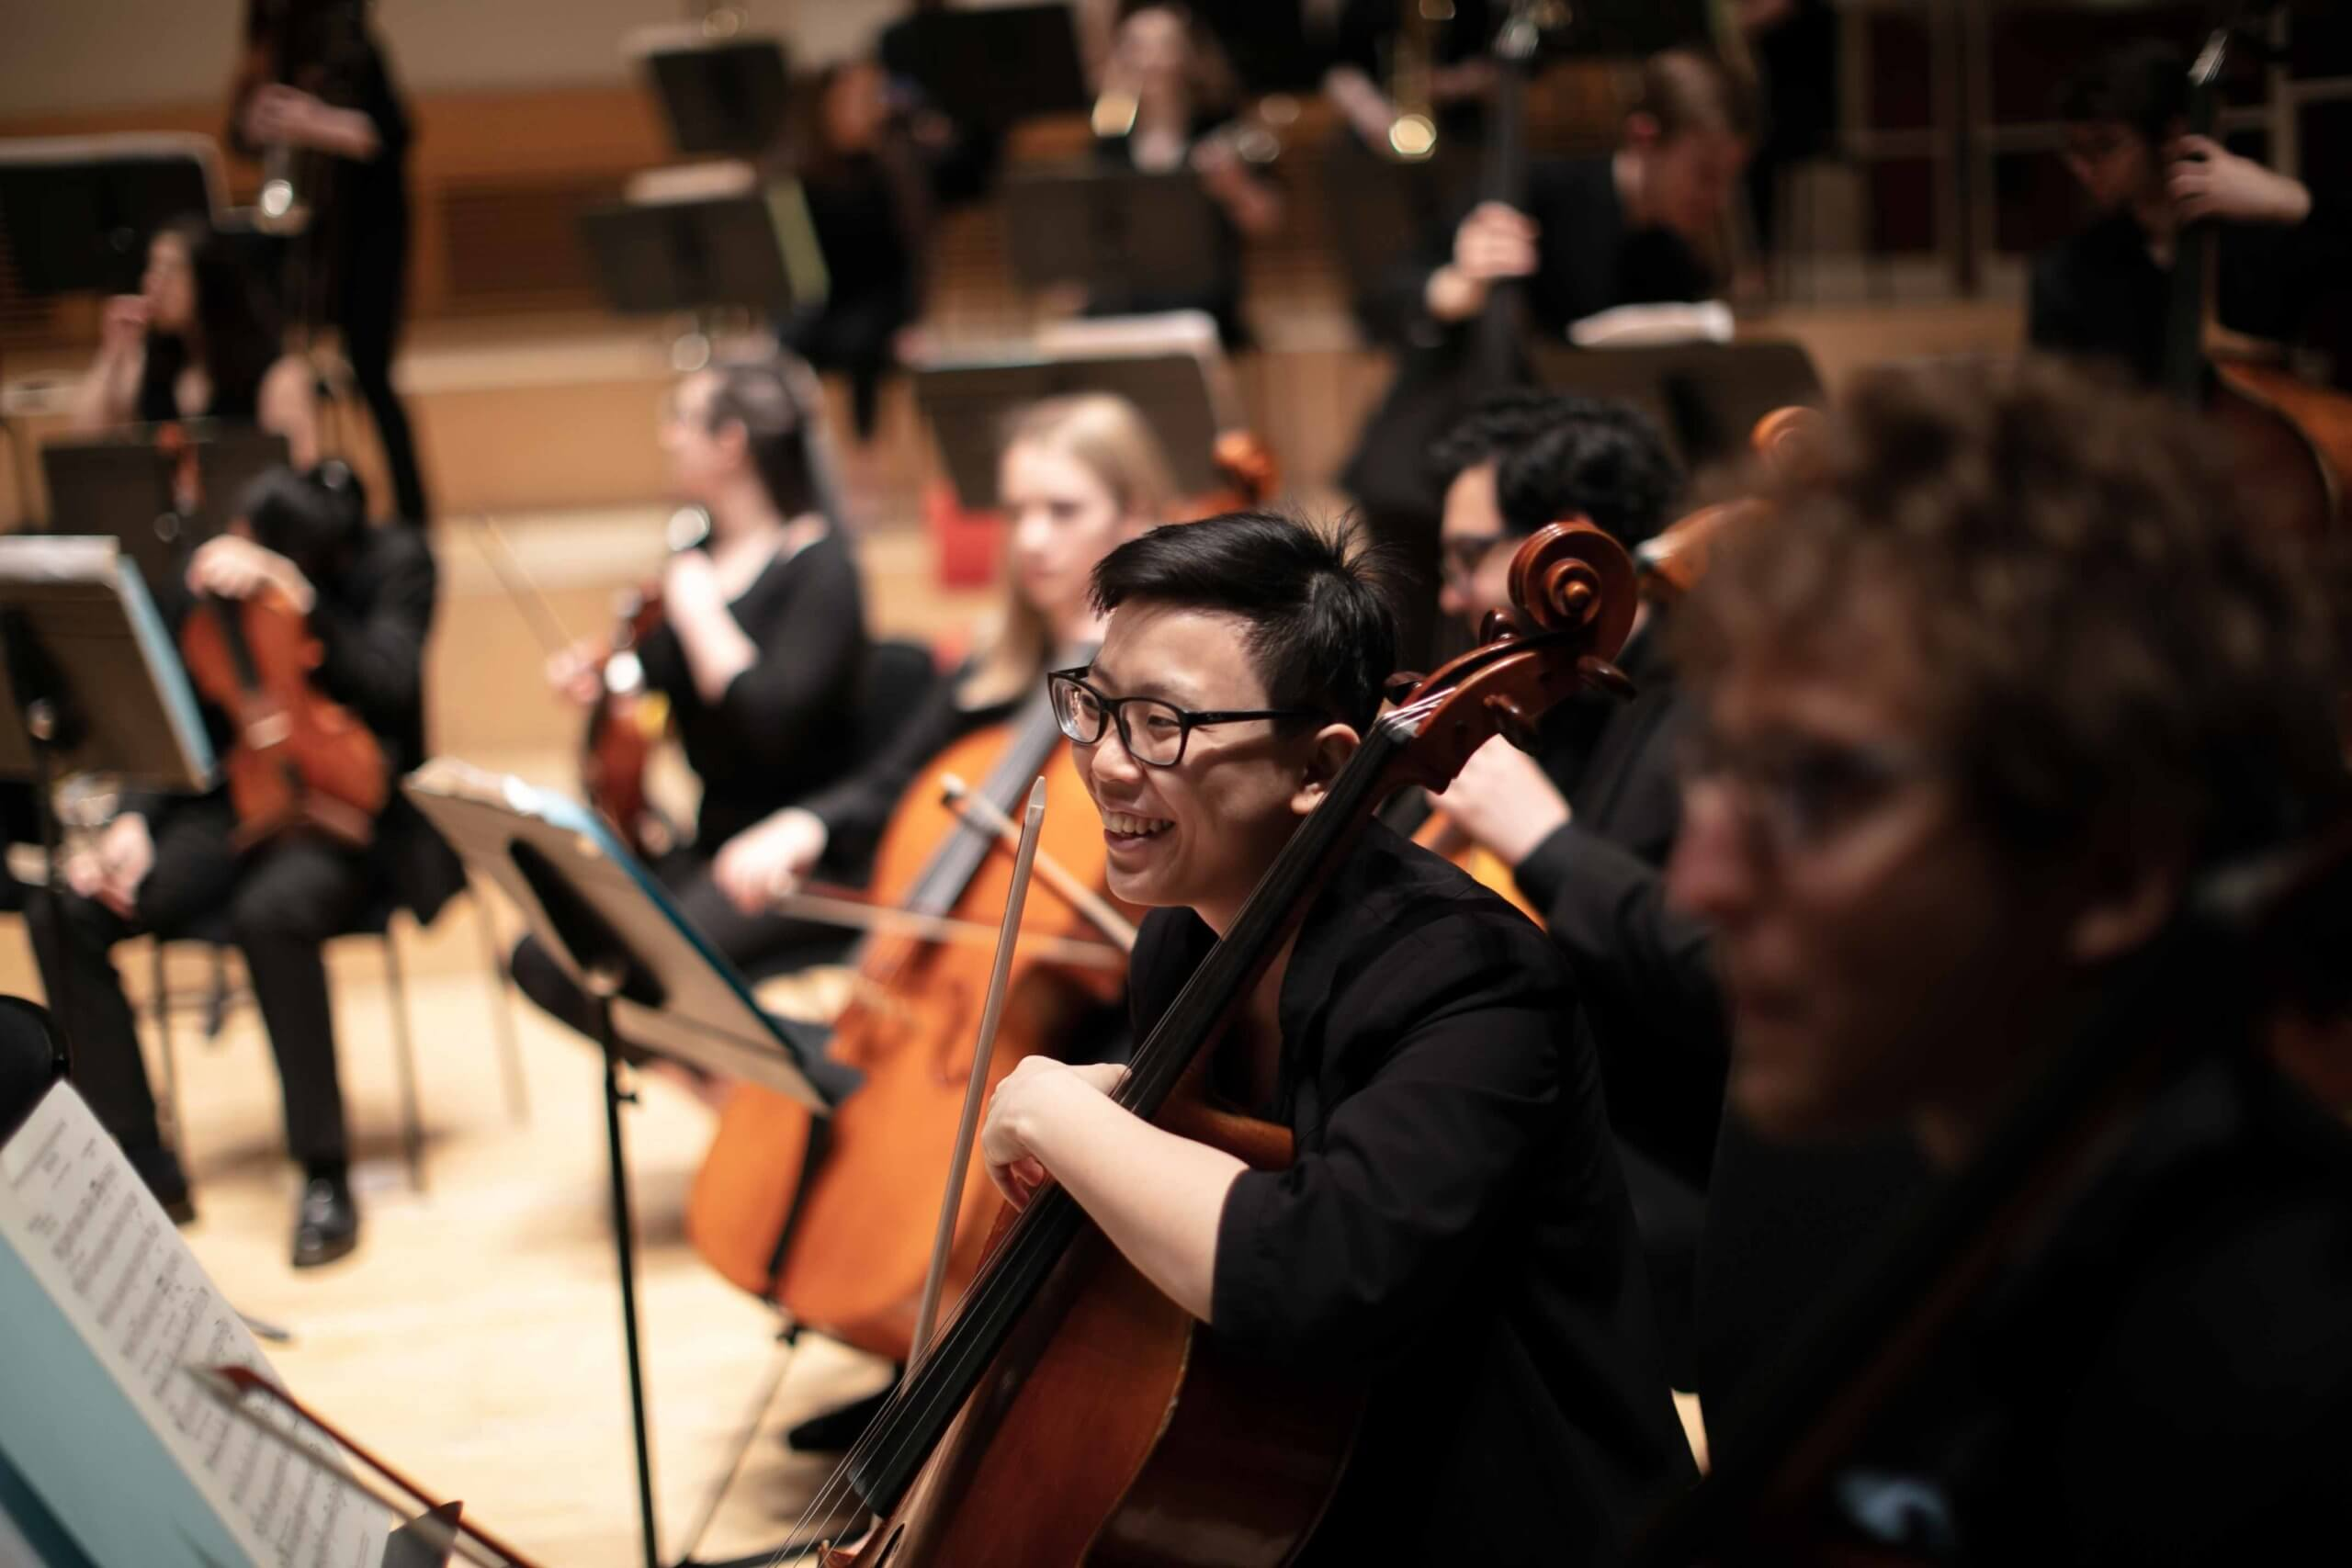 A musician smiles during an RCS symphony orchestra concert